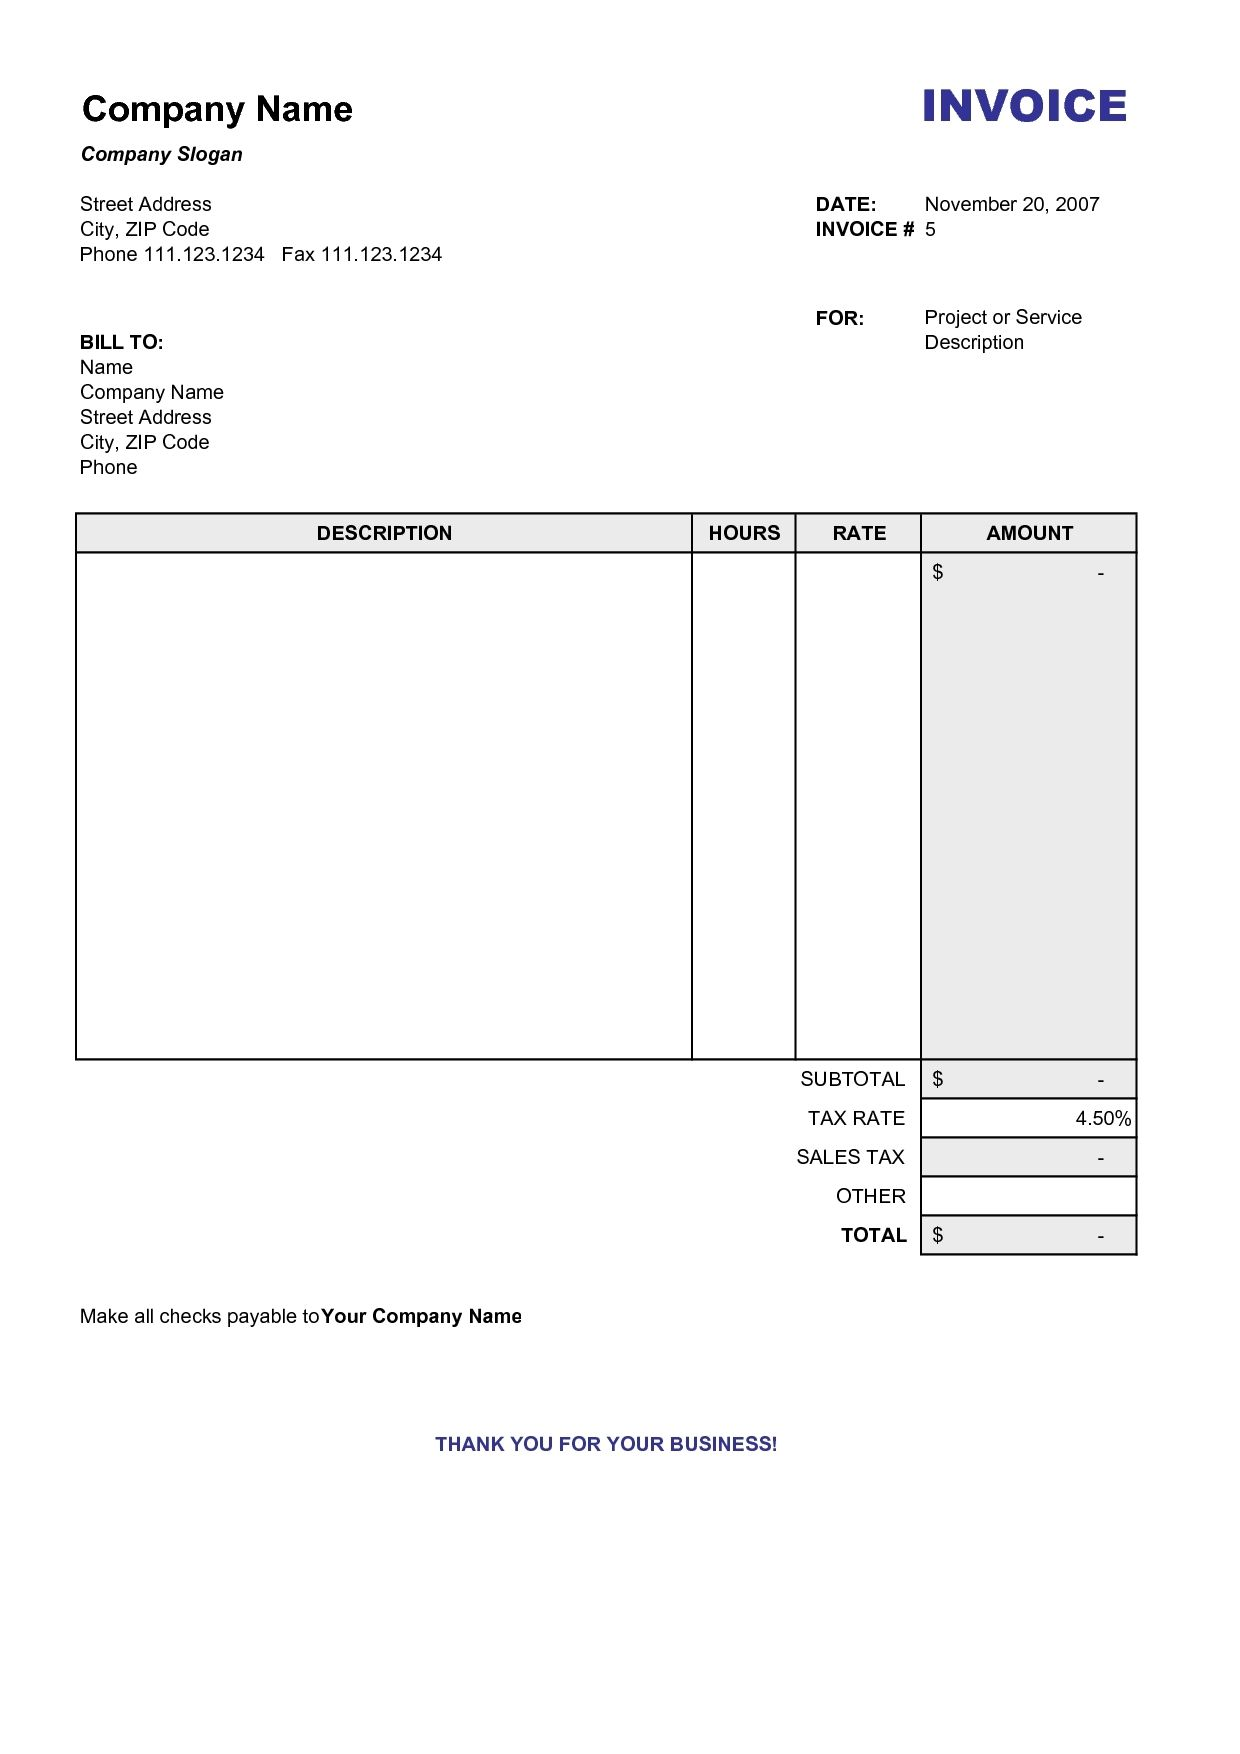 copy of a blank invoice invoice template free 2016 copy of blank – Receipt Template Open Office